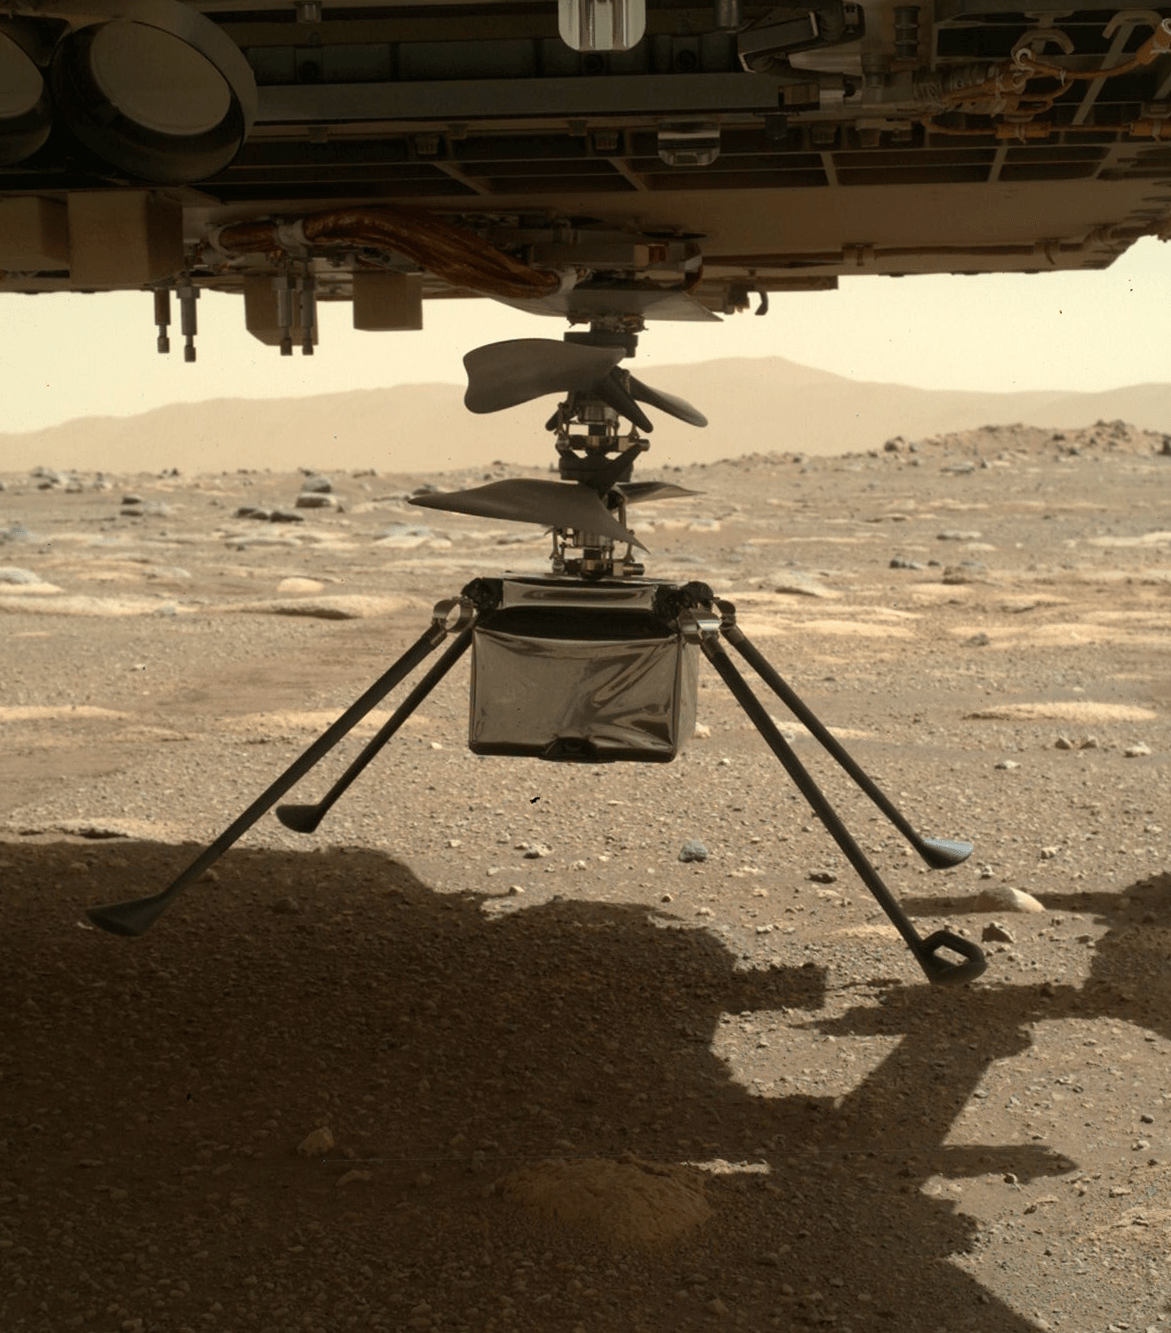 NASA Ingenuity helicopter has four legs which extends out of its body to support its weight and balancing. The helicopter was hidden in the belly of the Perseverance rover and was recently released so it can commence its own mission on the Red Planet.